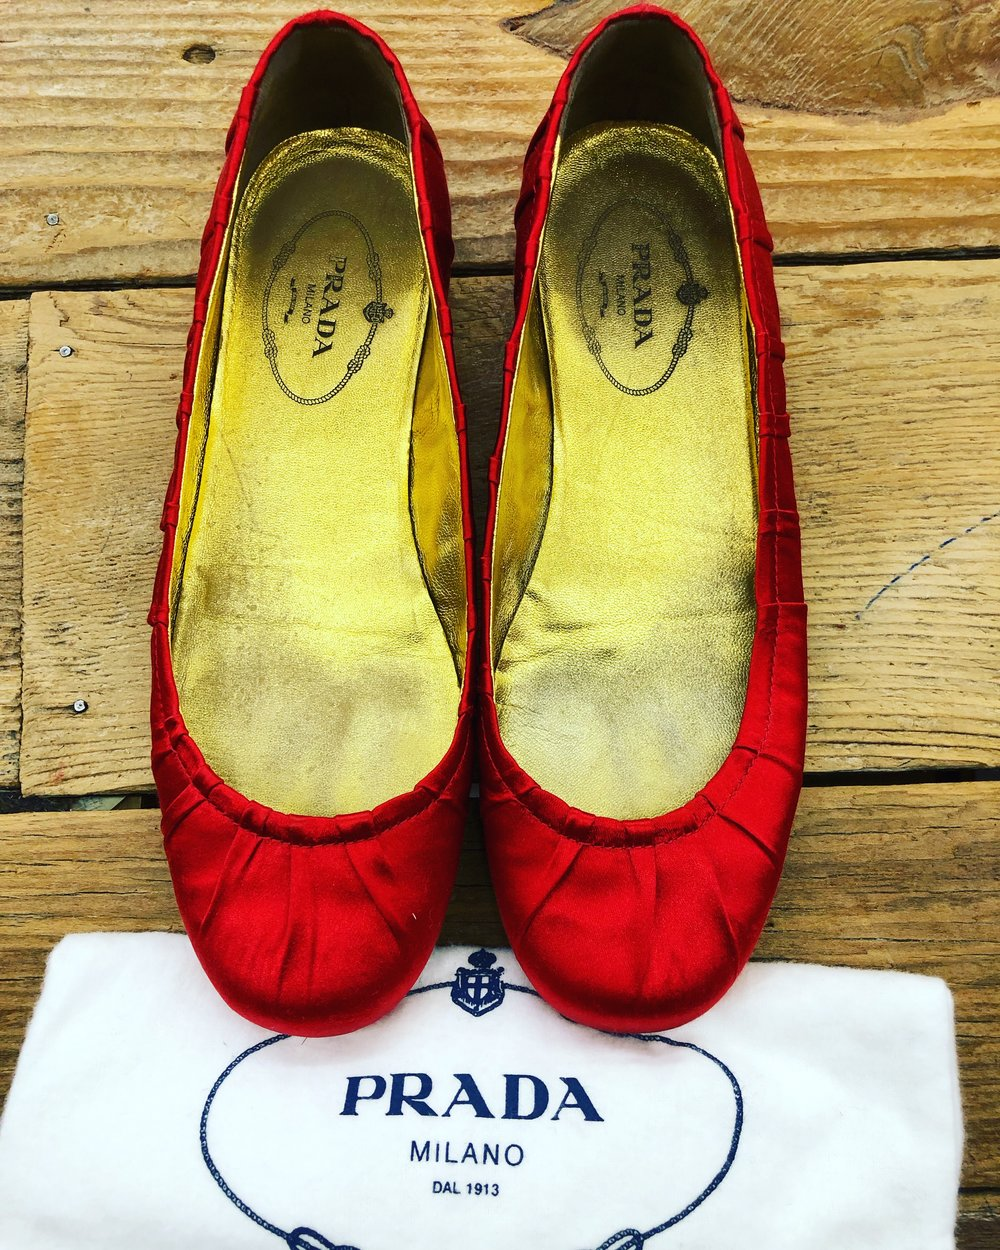 Prada Little Red Shoe - 35 - $99